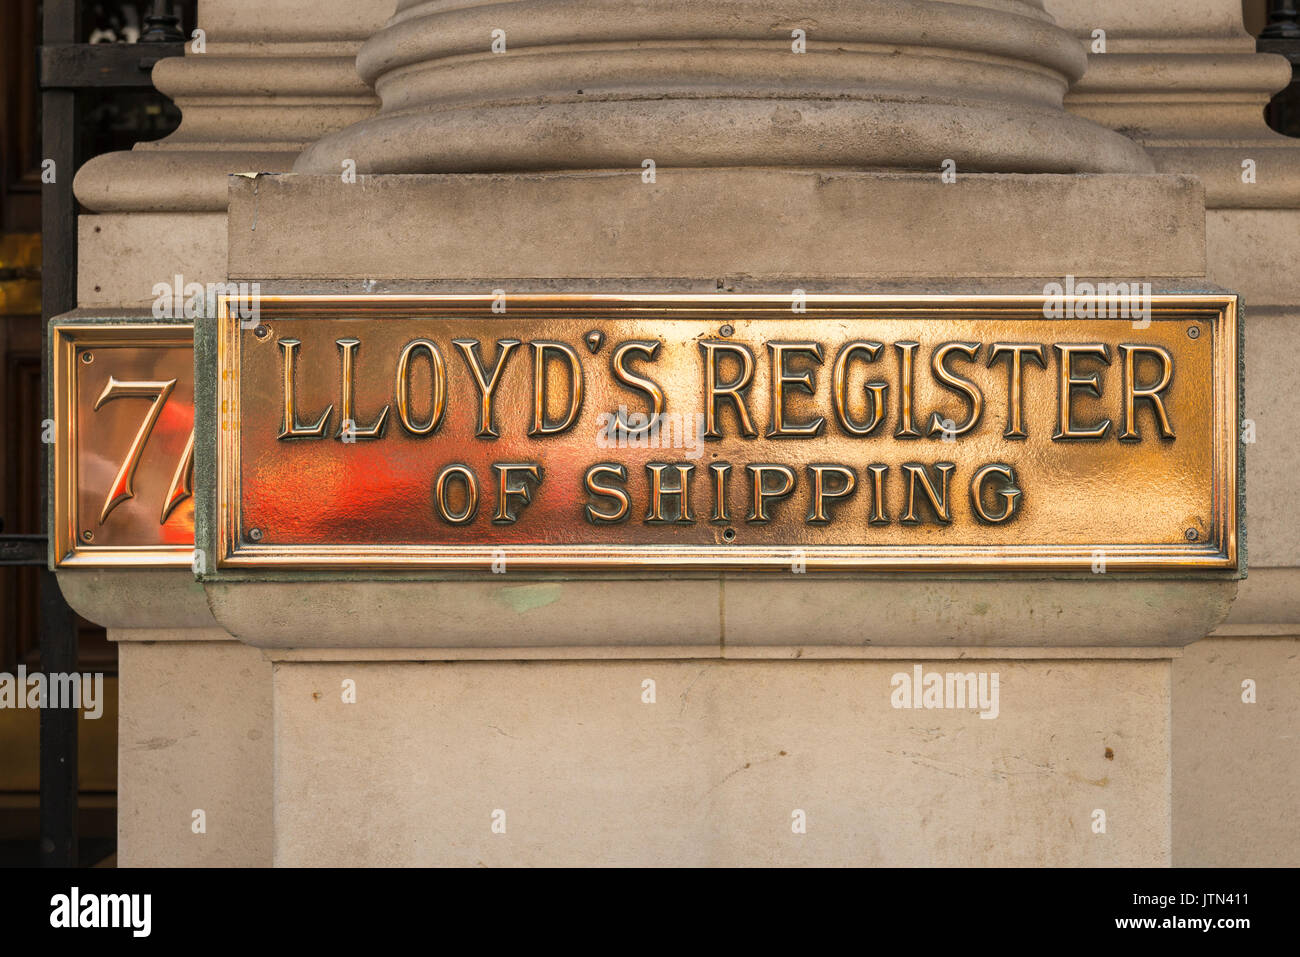 UK London City Financial Centre Center 71 Fenchurch Street Lloyd's Register of Shipping brass plate founded 1760 charity now oil gas nuclear rail etc - Stock Image